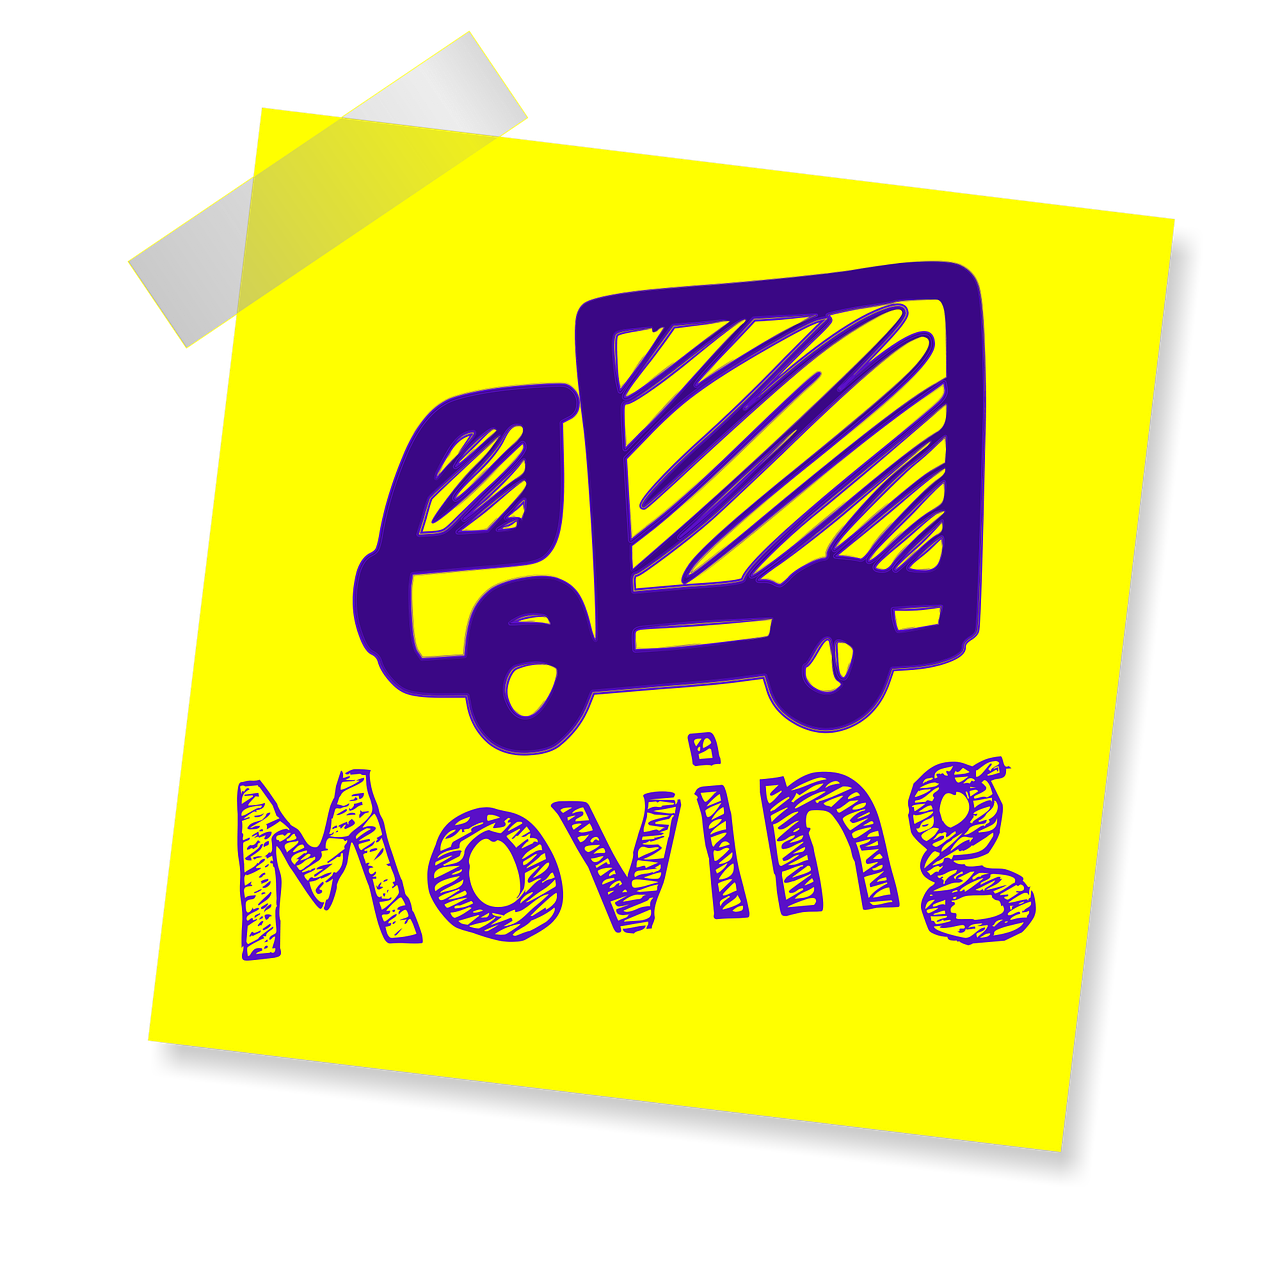 Exciting: We are moving to new offices :-)